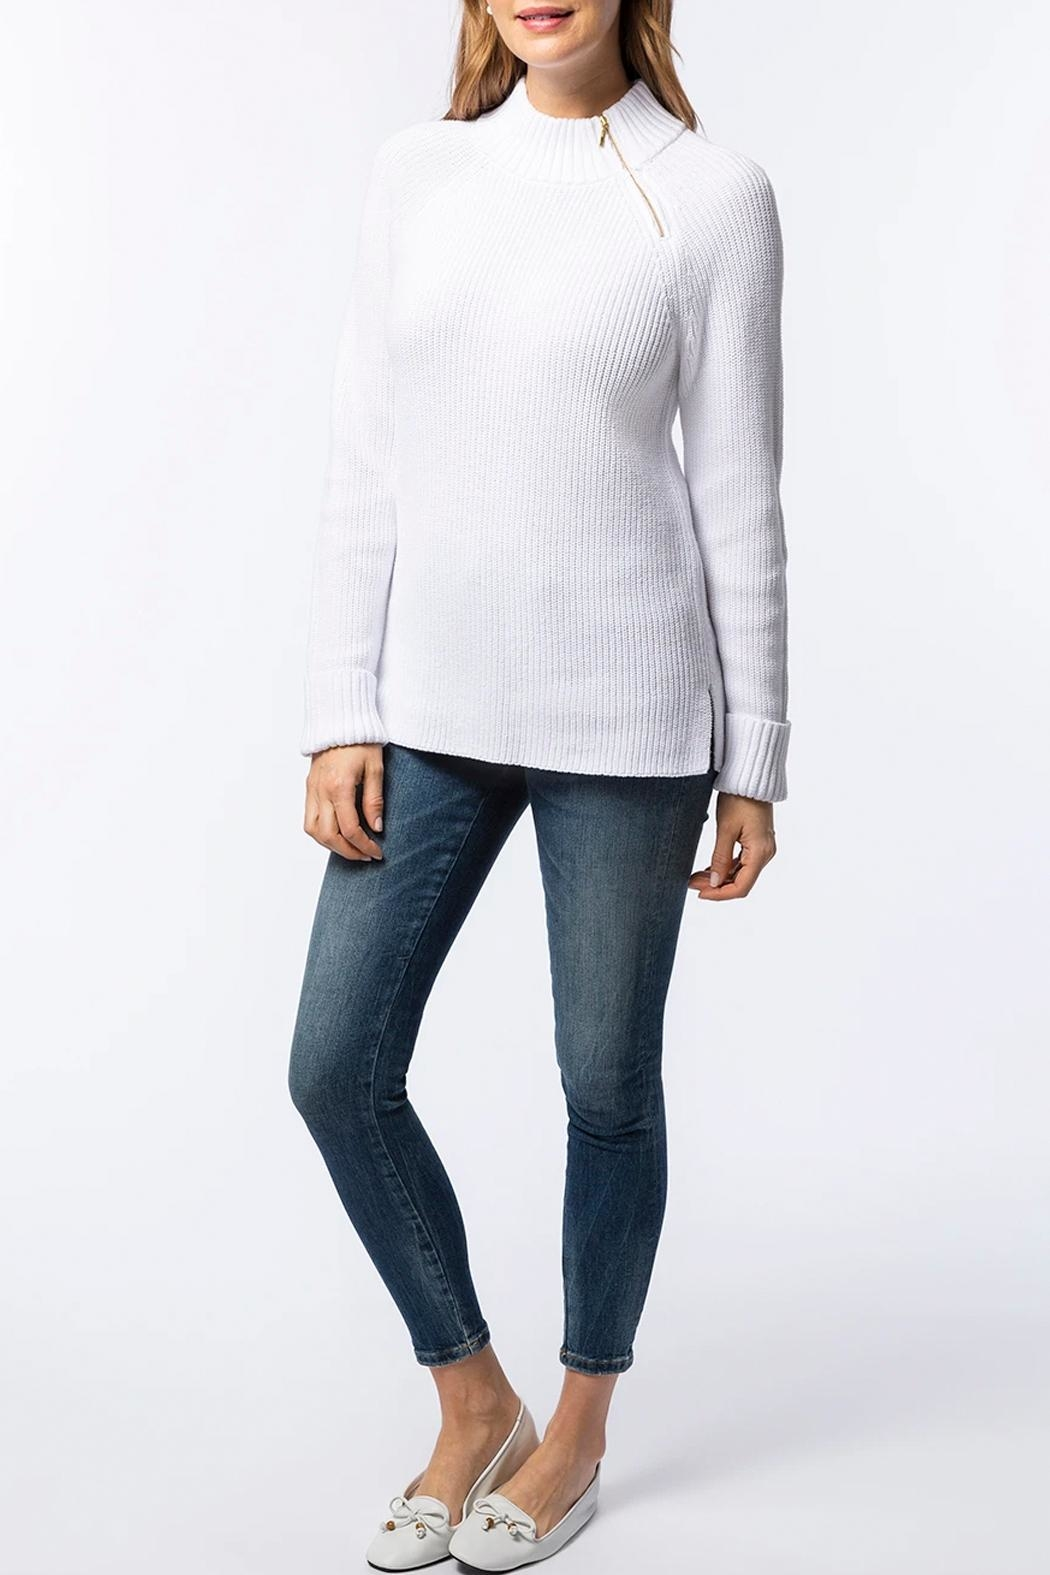 Tyler Boe Zip-Up Mock-Neck Sweater - Side Cropped Image